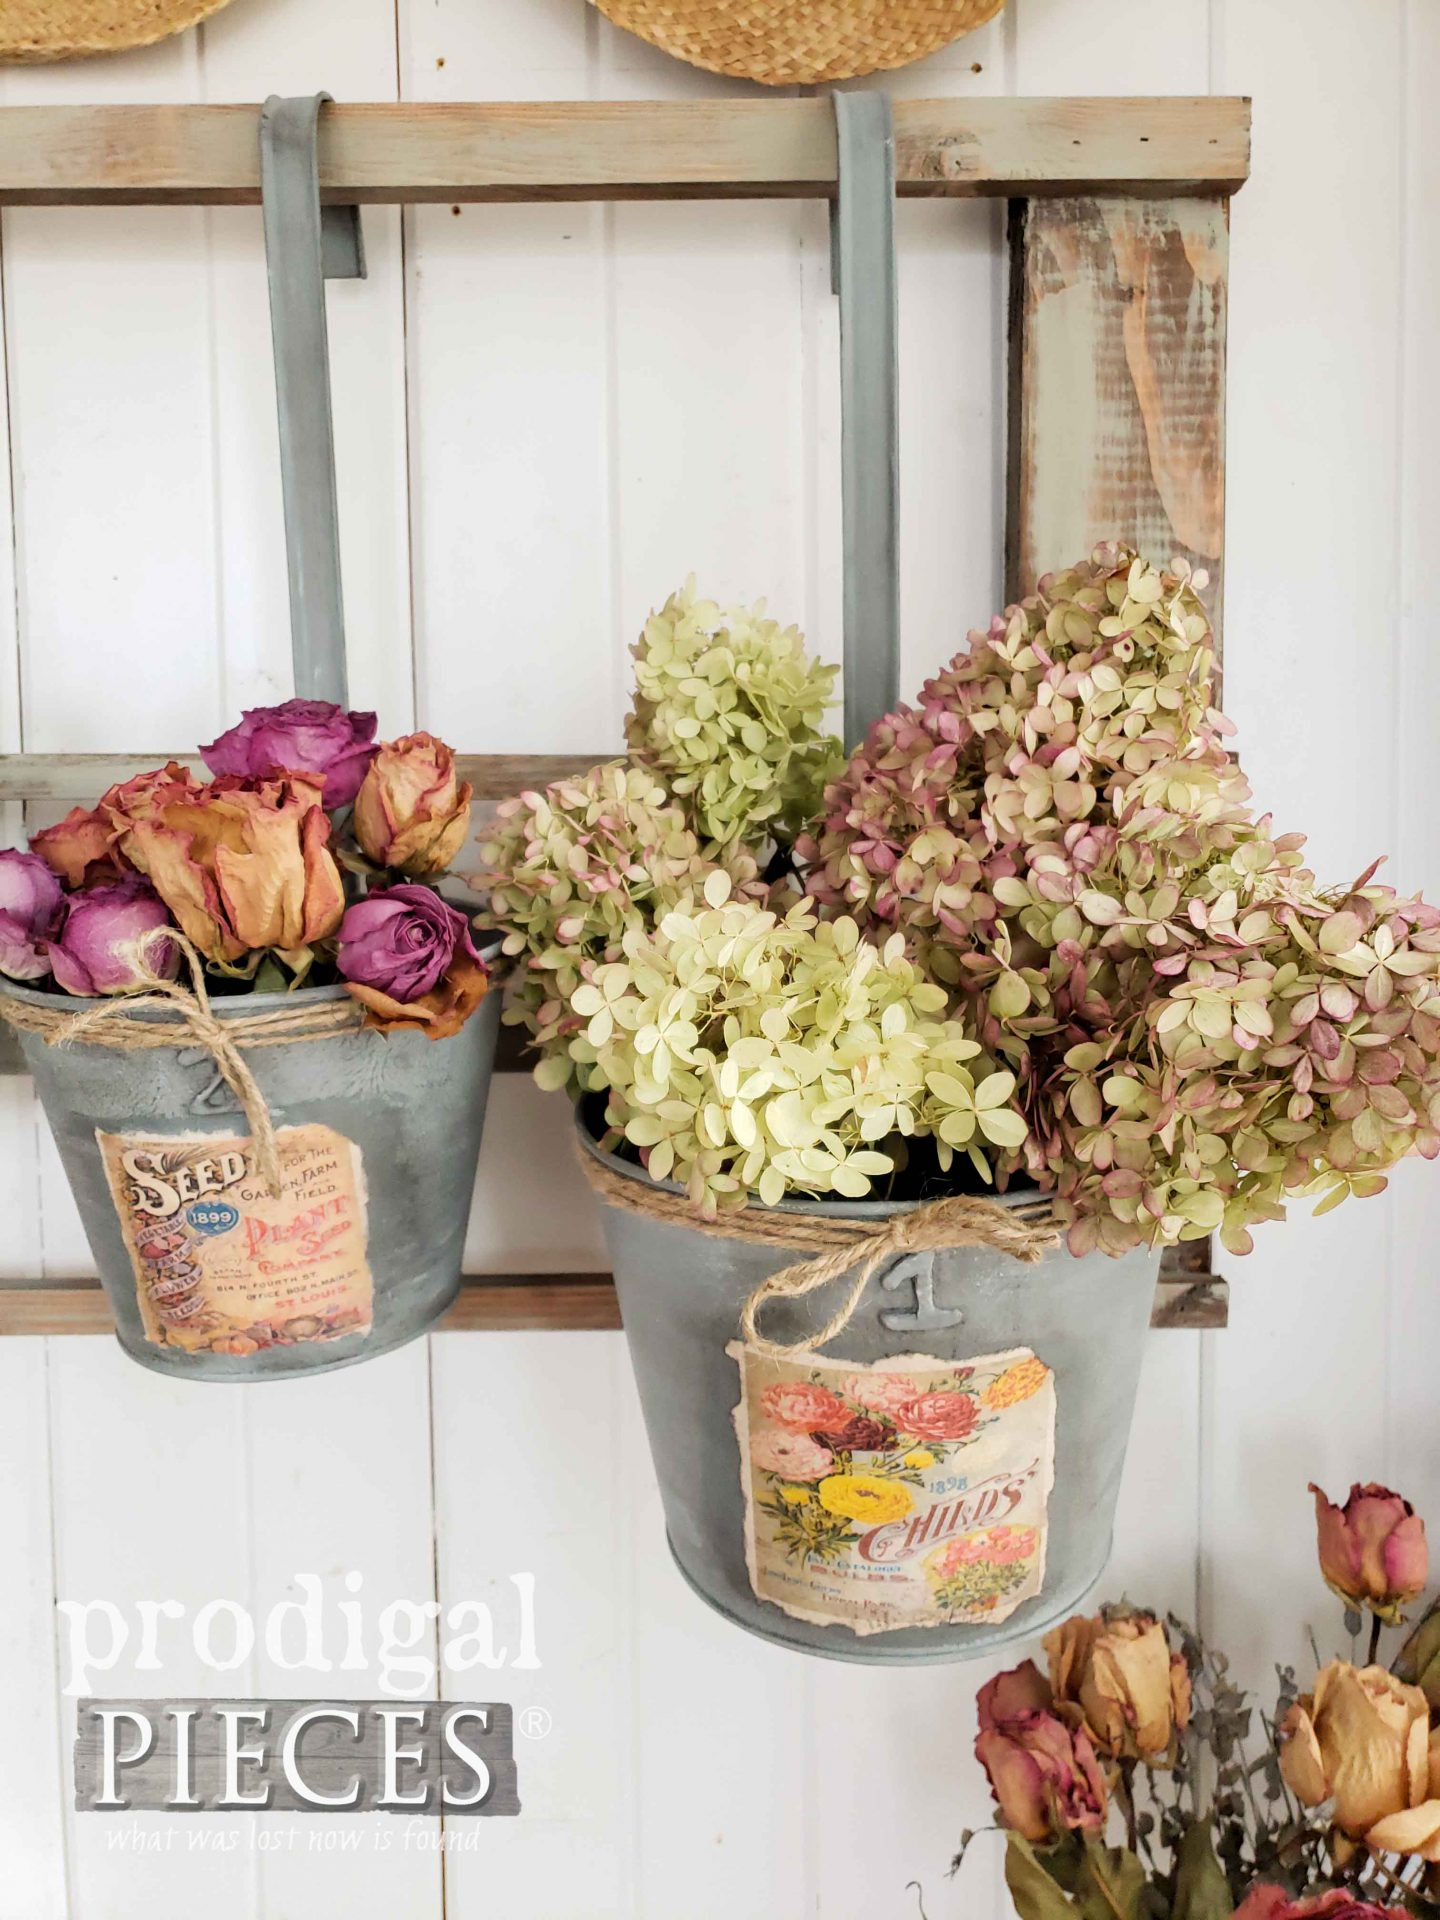 Dried Hydrangeas and Roses in Upcycled Christmas Decor by Larissa of Prodigal Pieces | prodigalpieces.com #prodigalpieces #flowers #diy #home #homedecor #farmhouse